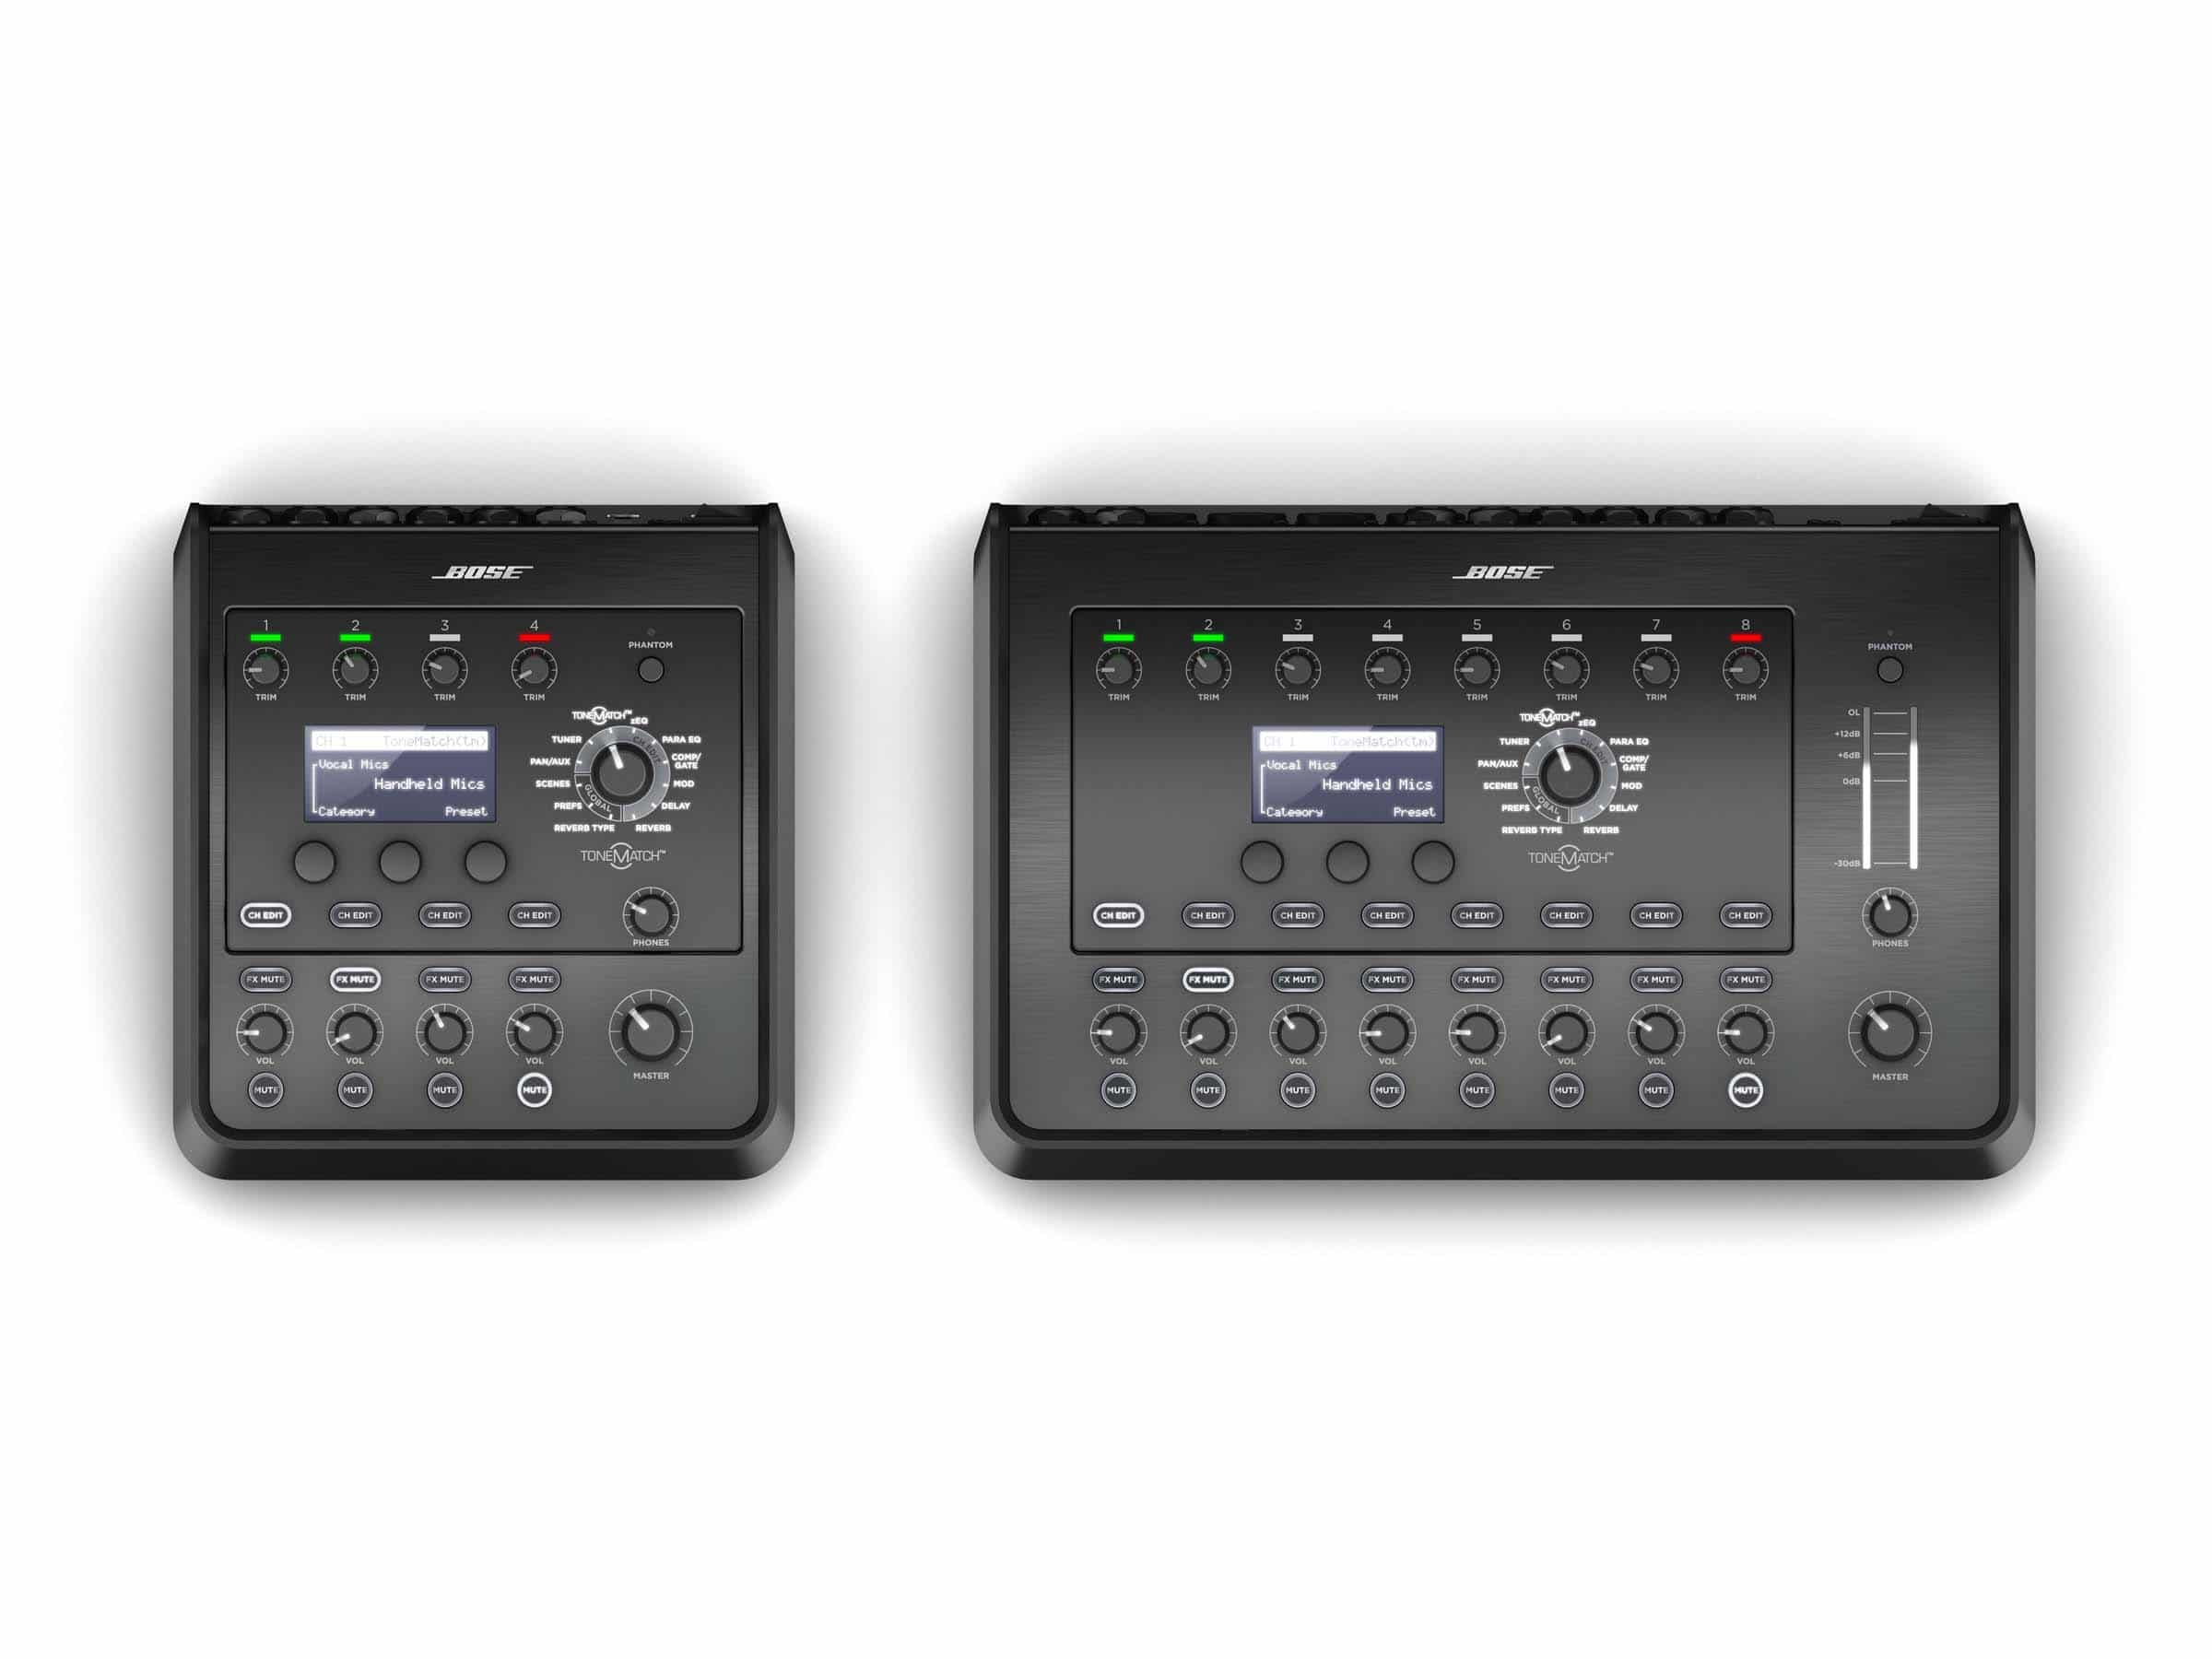 bose professional powerful t8s and t4s tonematch stereo mixers now available american songwriter. Black Bedroom Furniture Sets. Home Design Ideas